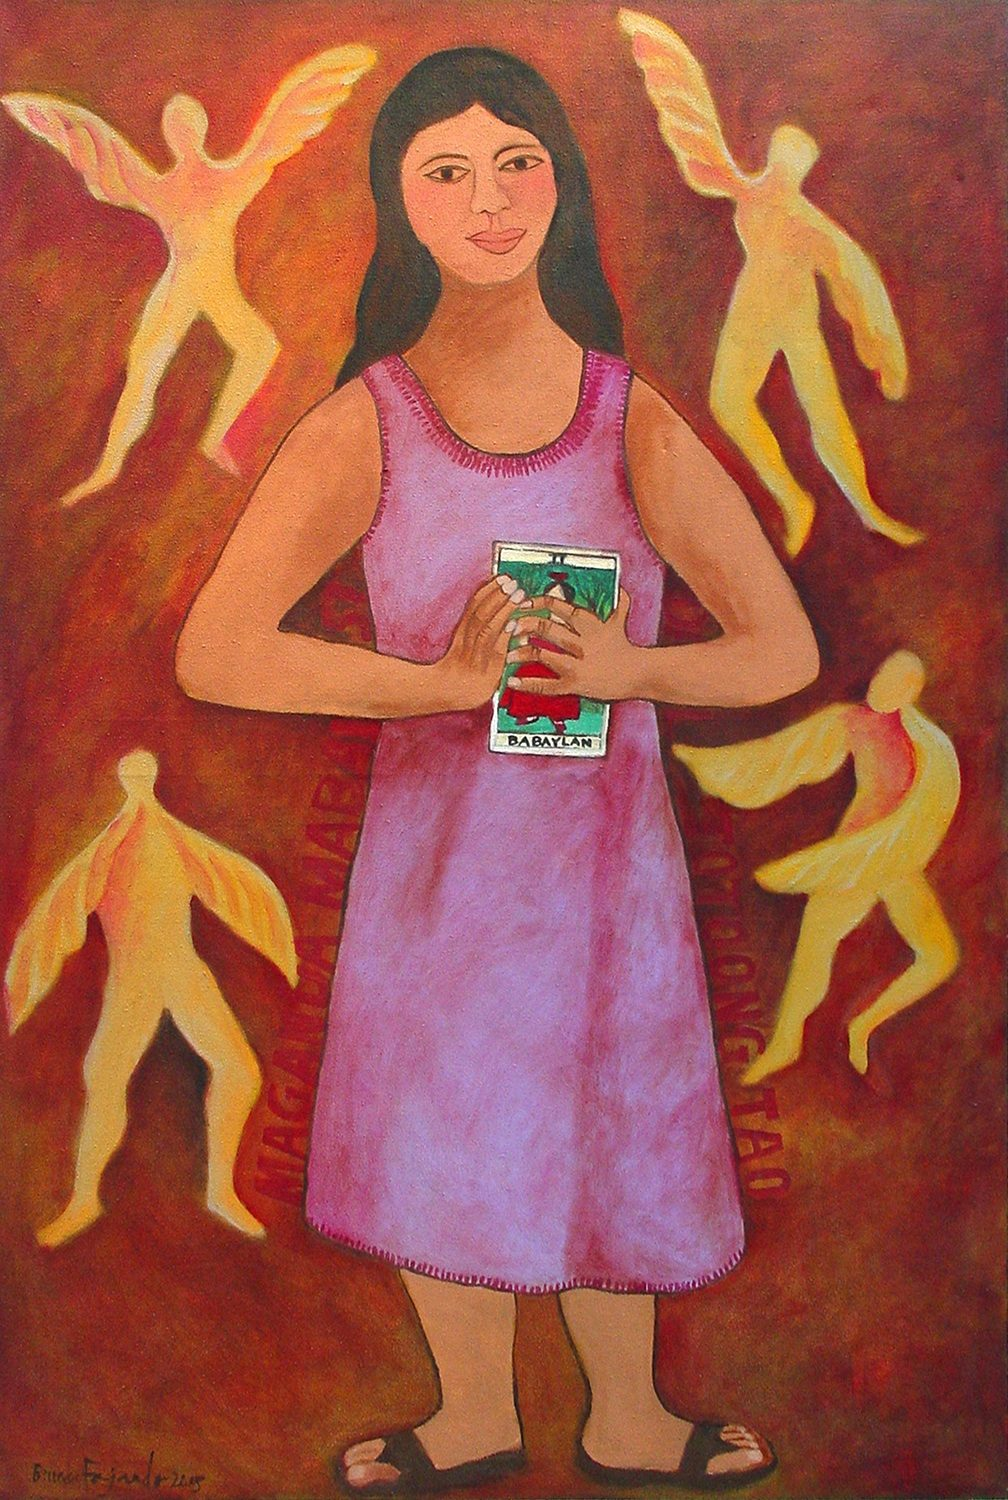 Brenda Fajardo - Archives of Women Artists, Research and